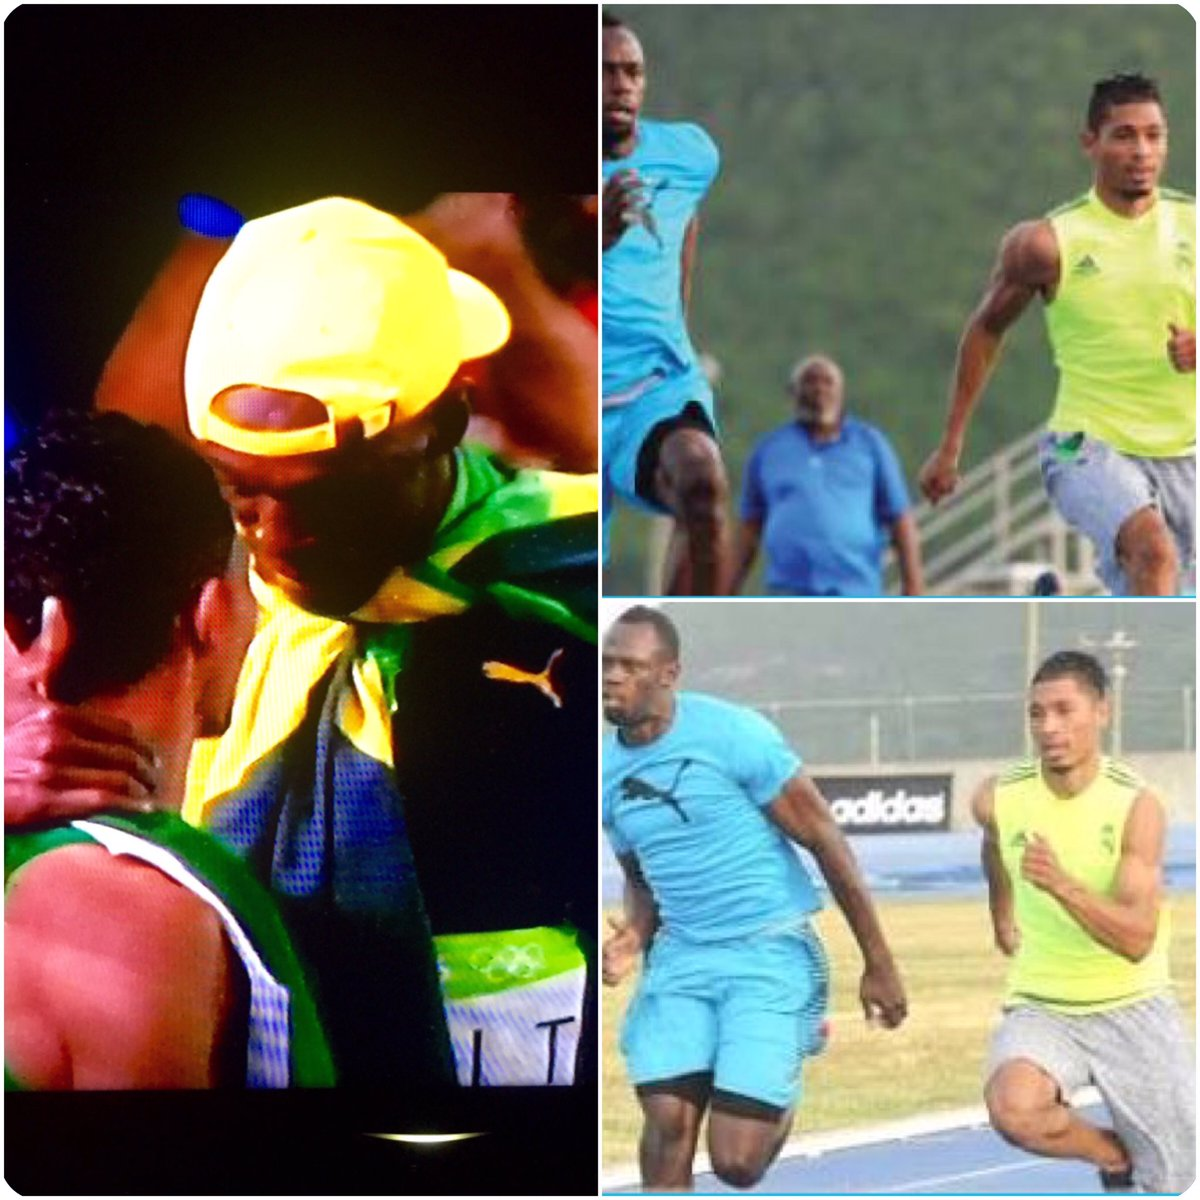 They trained together and today @usainbolt & @WaydeDreamer have both won #Gold at the #Olympics. #RealRecogniseReal https://t.co/7mHt7BdskO